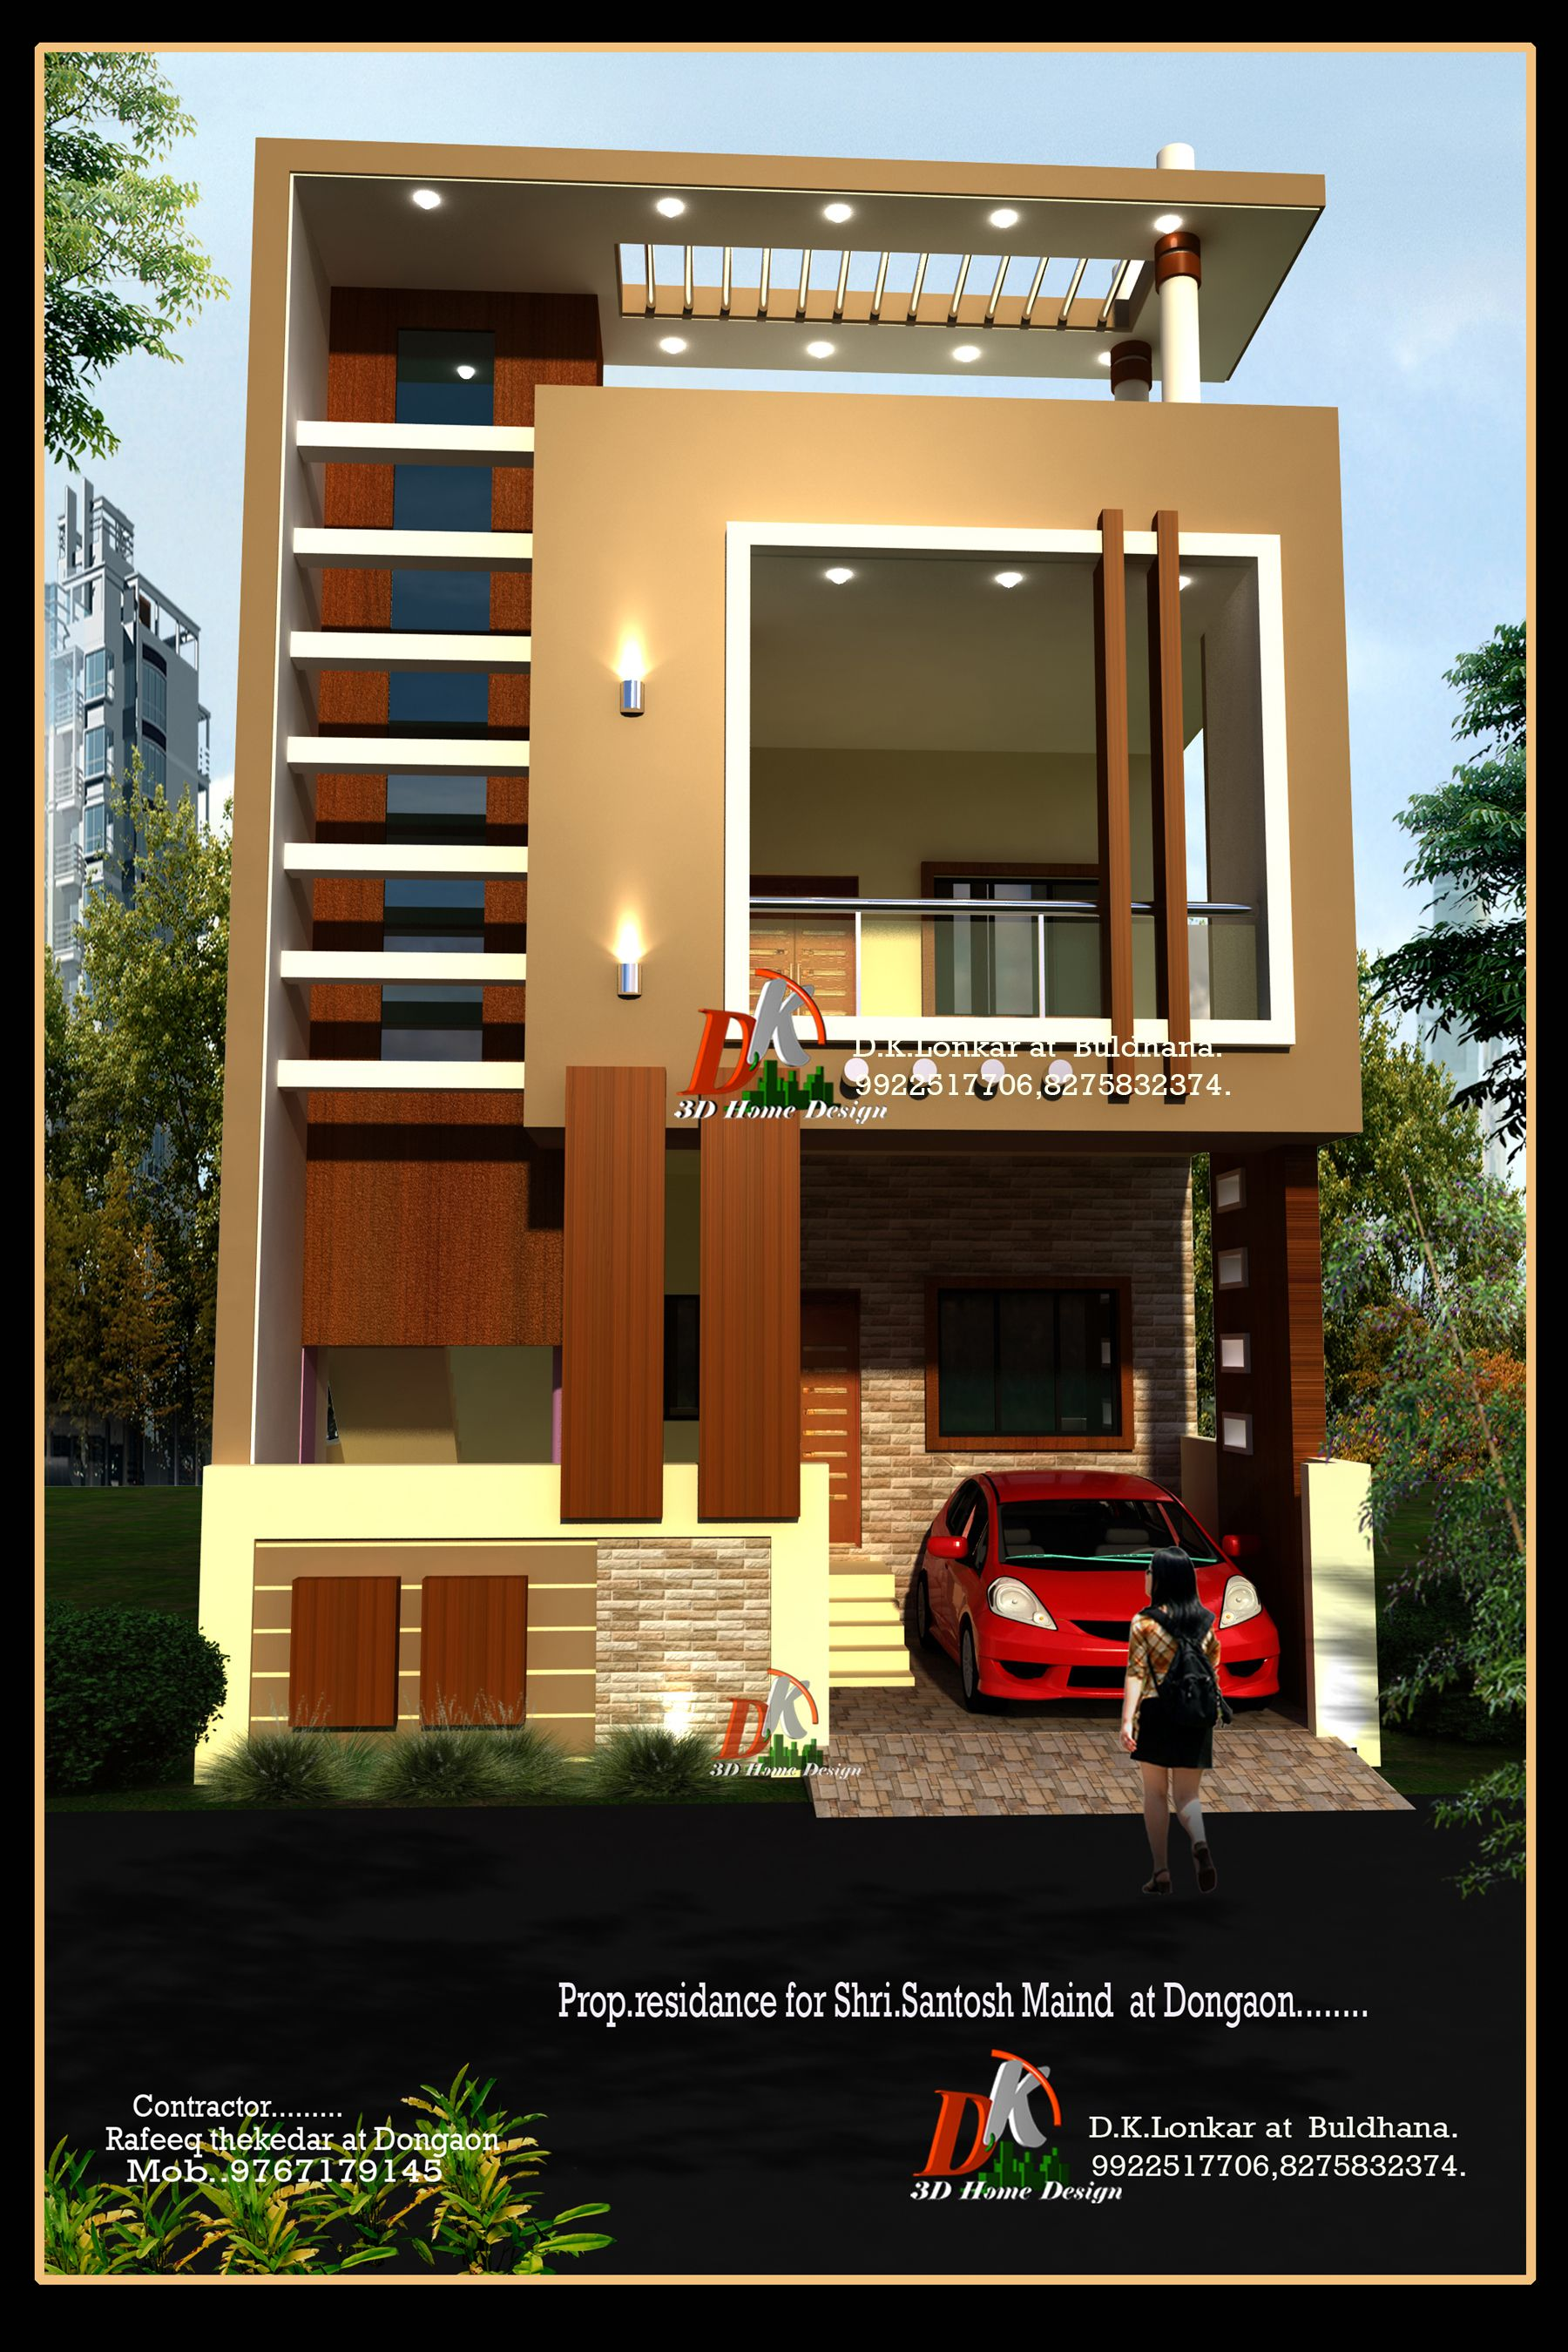 House Front Design House Design Front Elevation Designs: Wooden Thoons In Place Of The Brown Pillars For A Modern Classic Mix Feel (With Images)